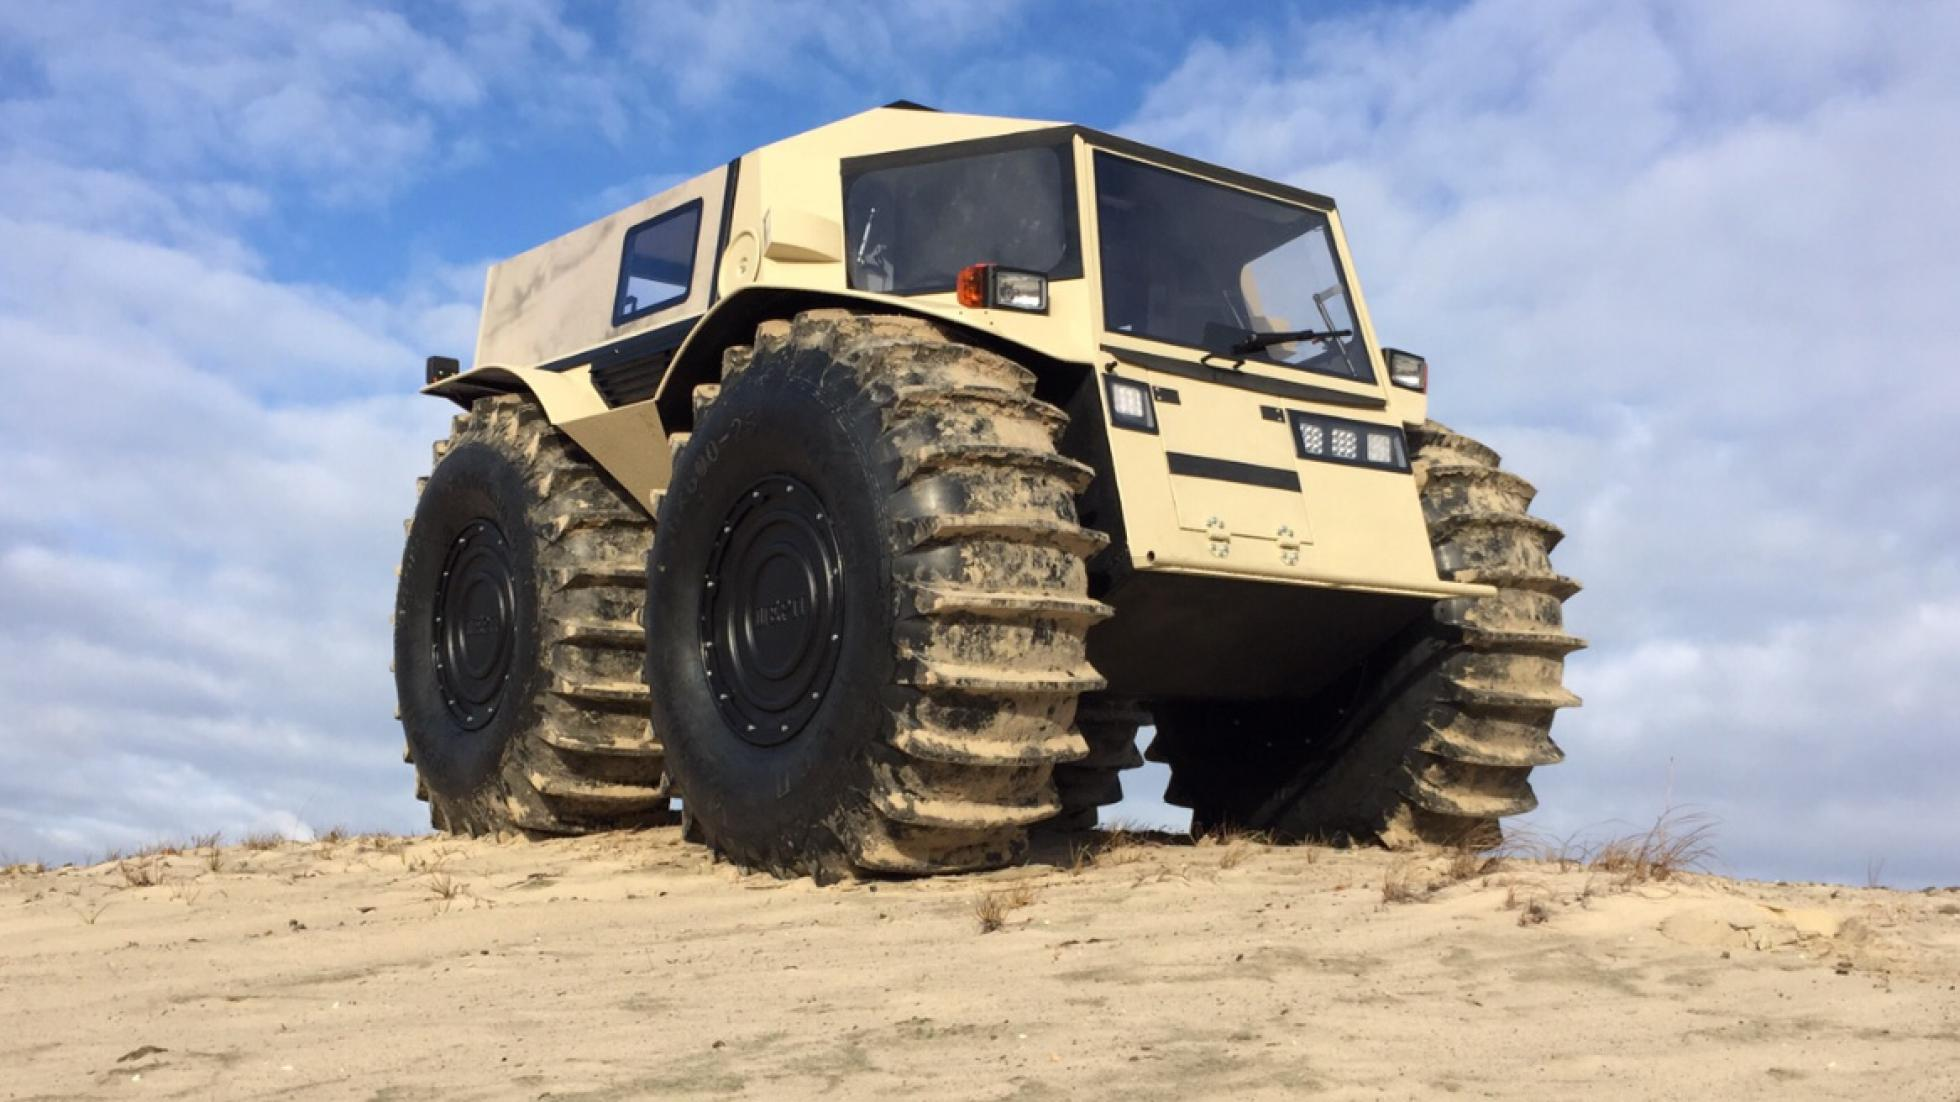 The Sherp – survival vehicle